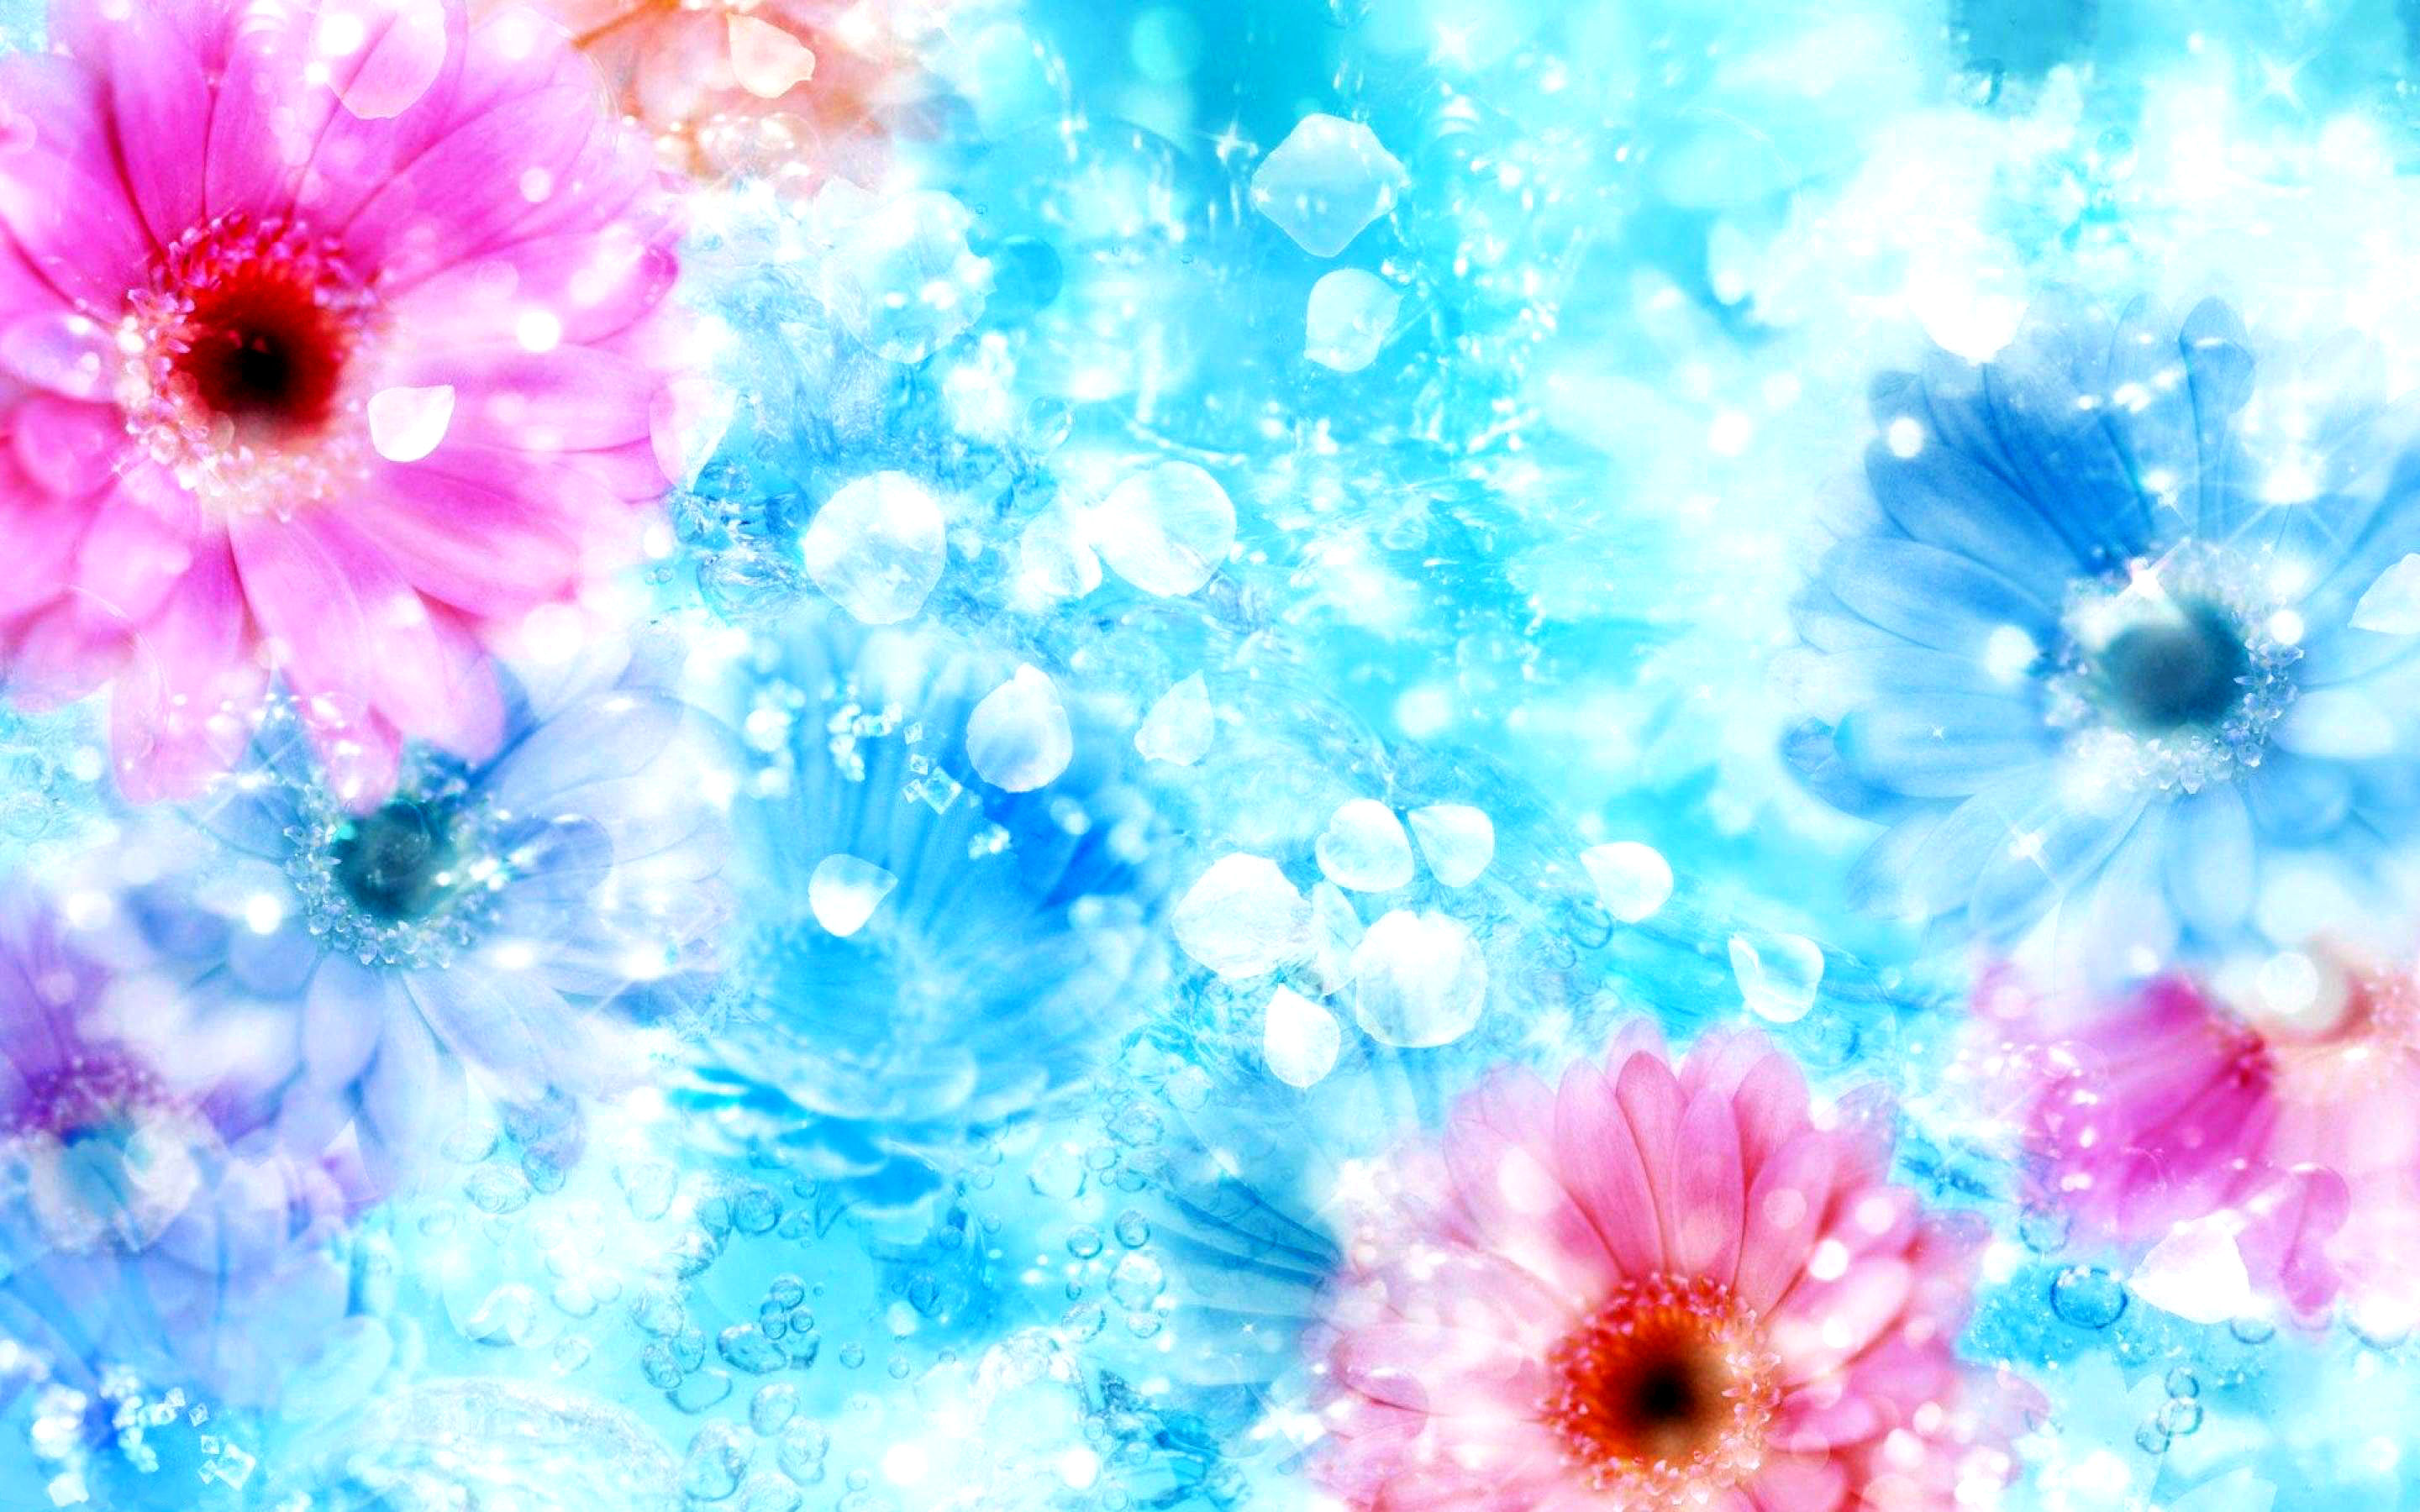 flower hd wallpapers. Background images of flowers